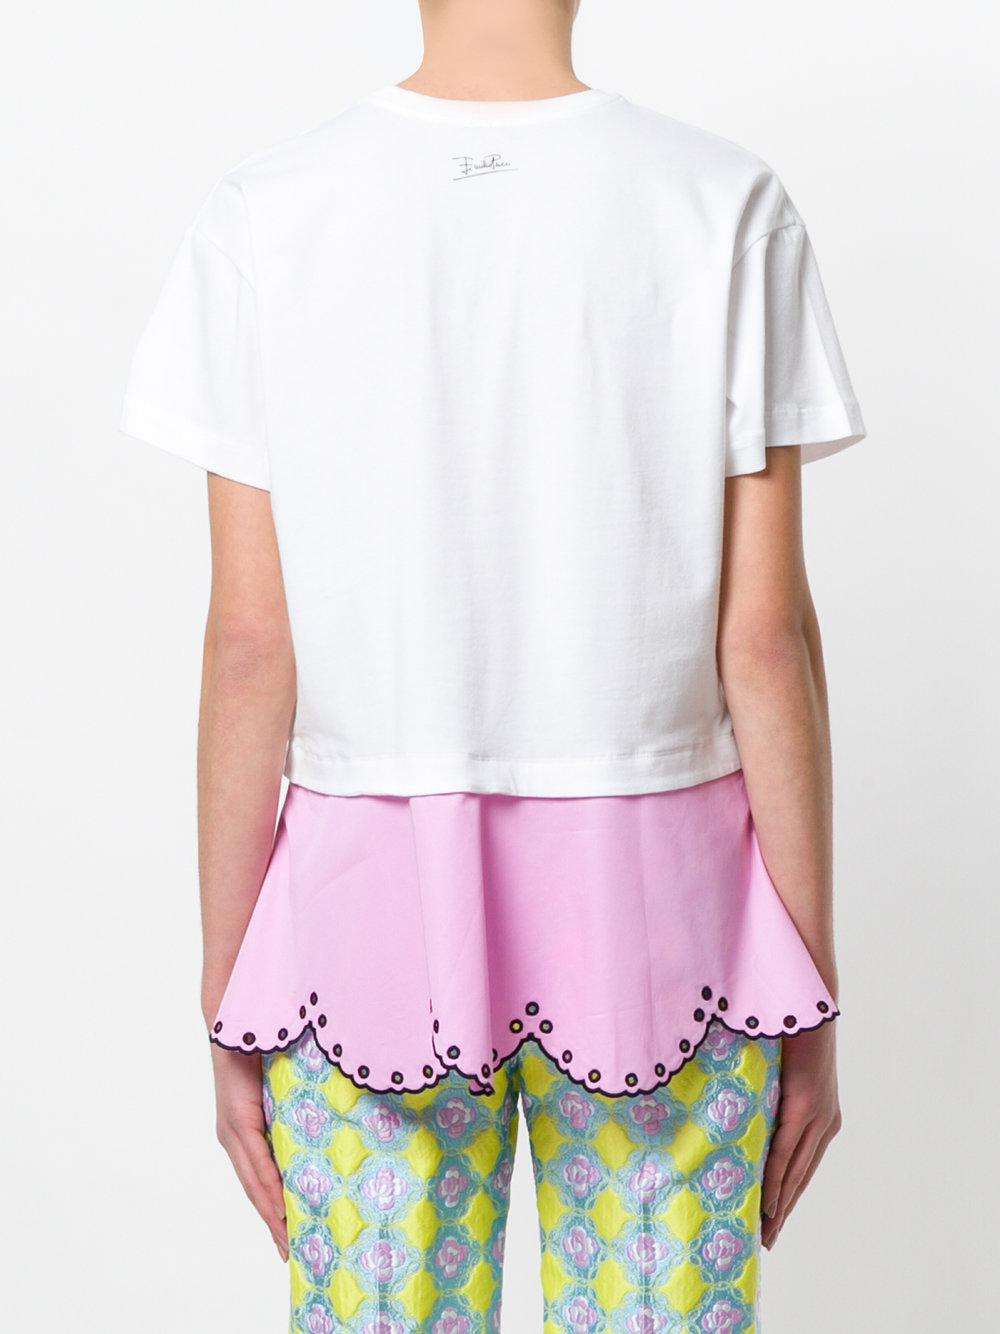 Emilio Pucci layered open embroidery T-shirt Quality From China Cheap Sale For Sale Shopping Online Cheap Price Cheap Sale Manchester NFMshYBo